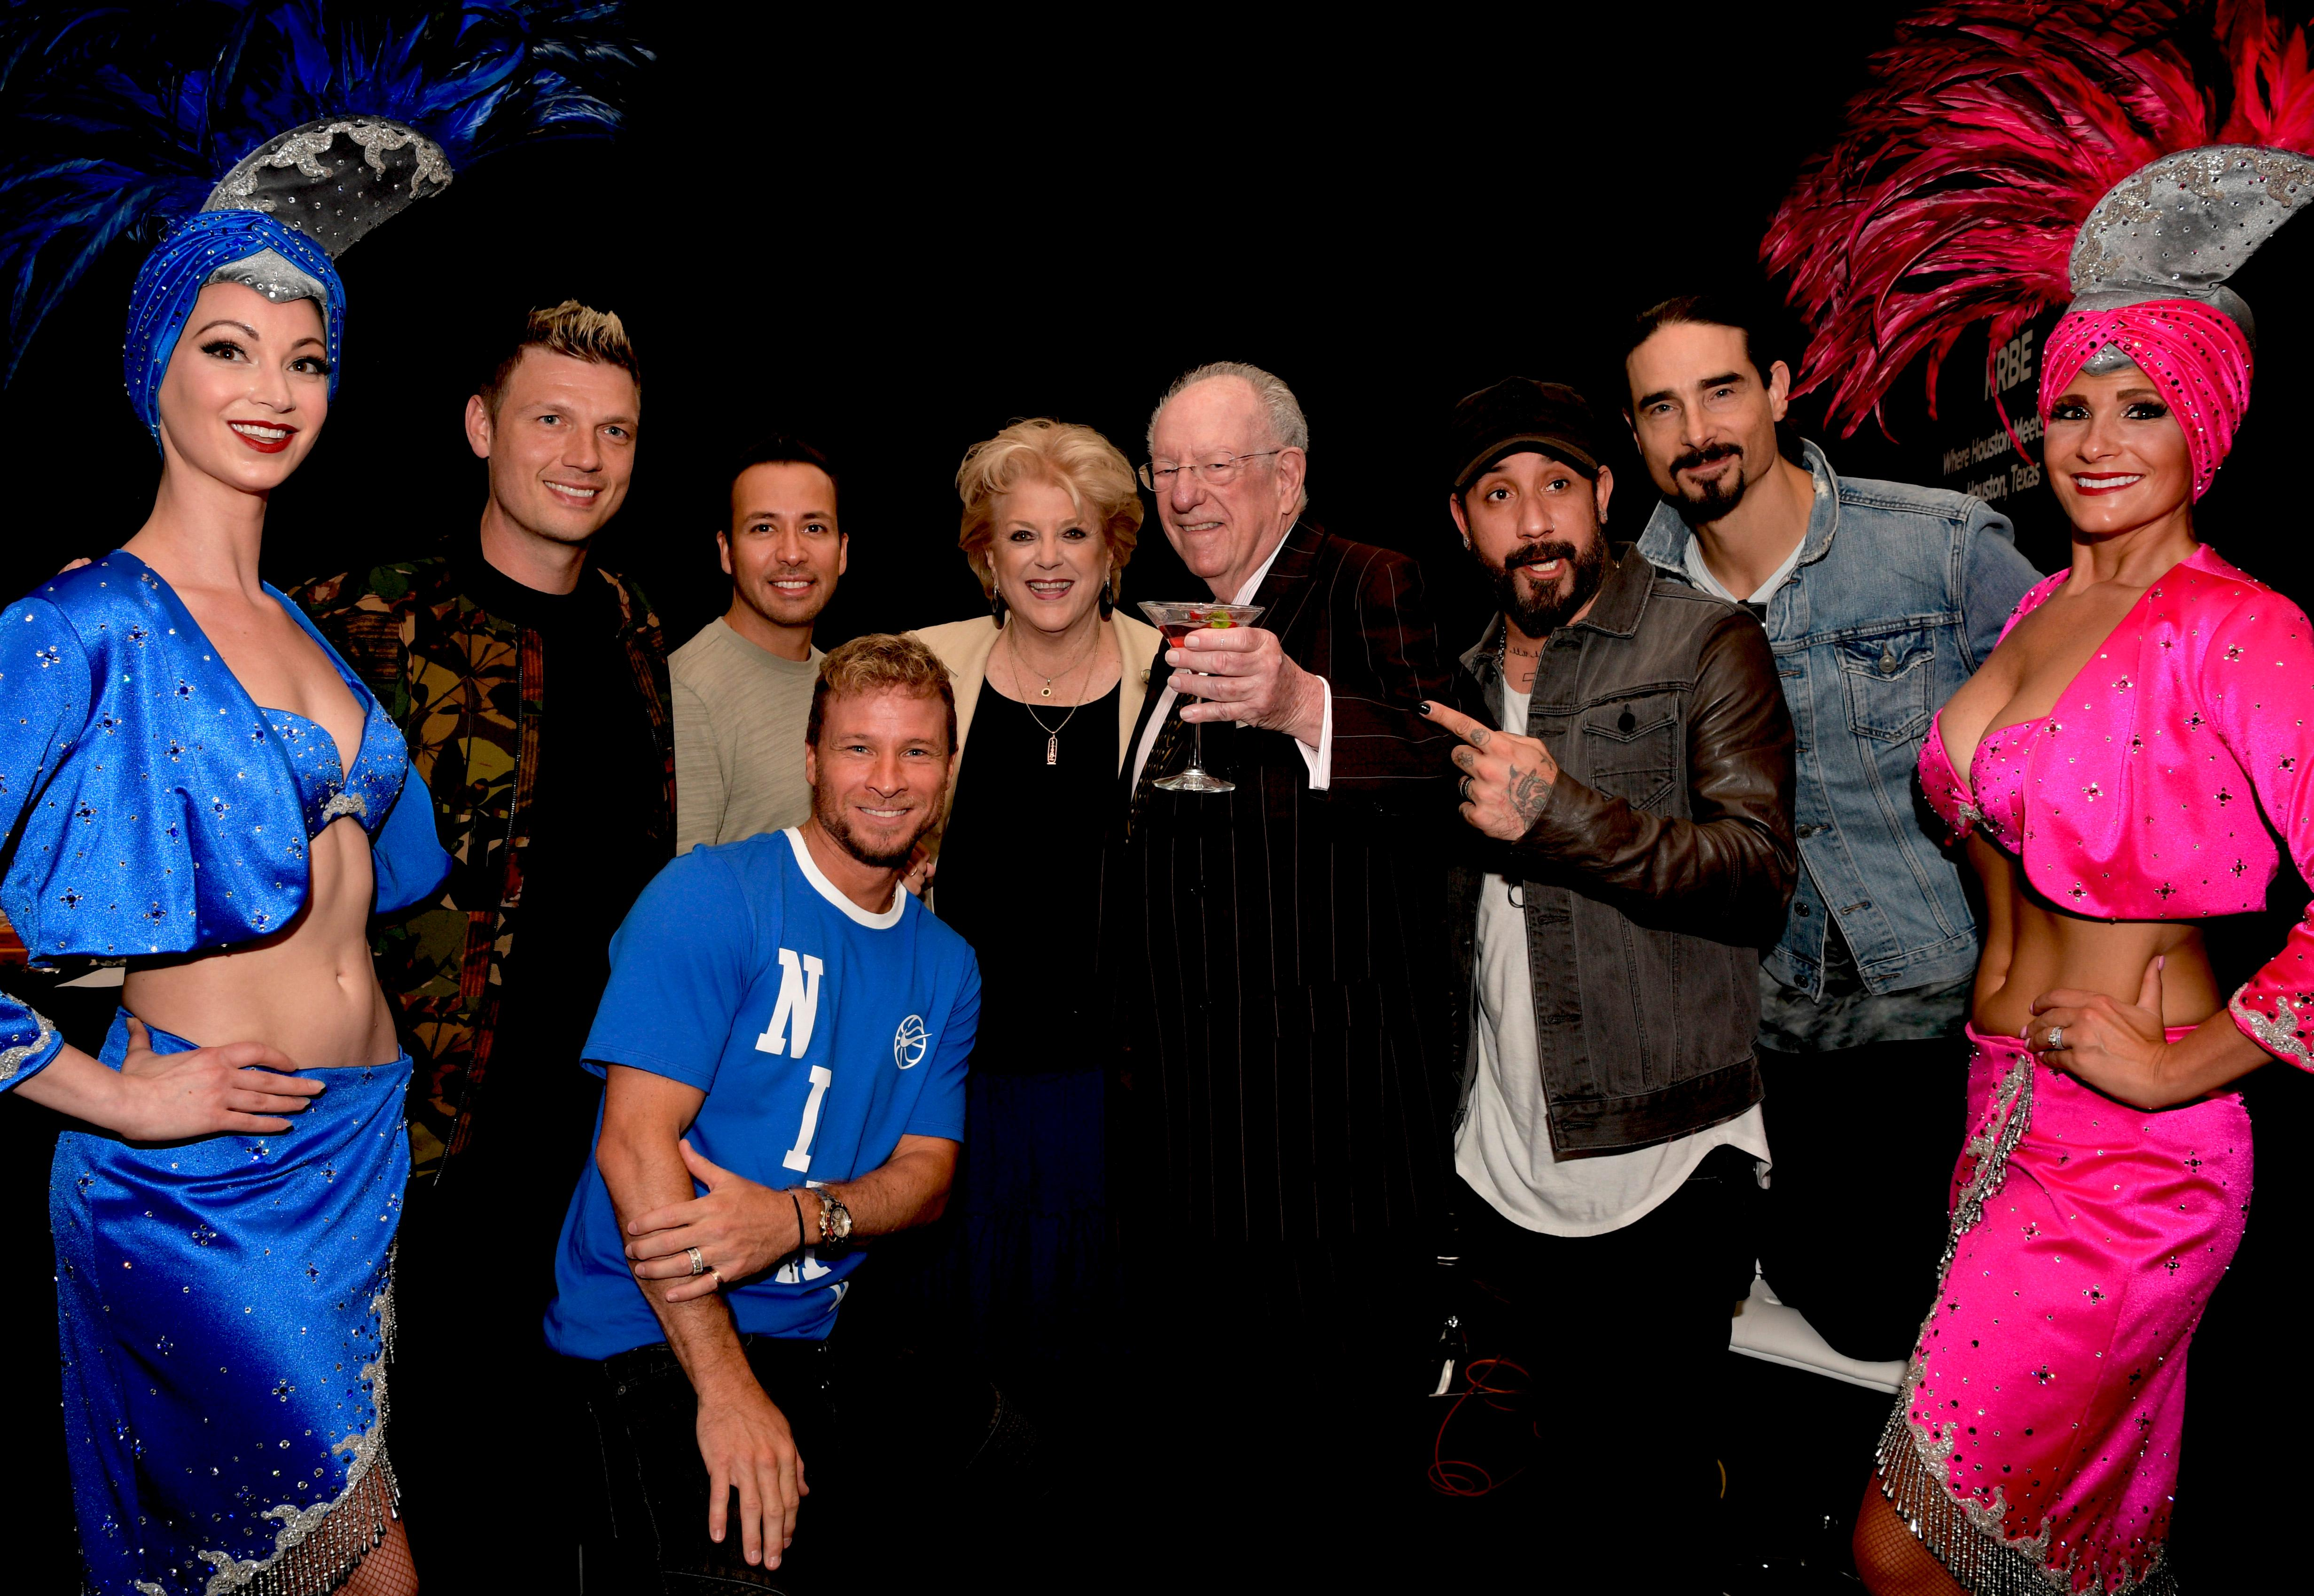 Las Vegas Mayor Carolyn G. Goodman and former Las Vegas Mayor Oscar B. Goodman run into the Backstreet Boys at the Billboard Music Awards Radio Row with representatives from across the country at the MGM Grand Hotel & Casino on the Las Vegas Strip. Saturday, May 19, 2018. CREDIT: Glenn Pinkerton/Las Vegas News Bureau